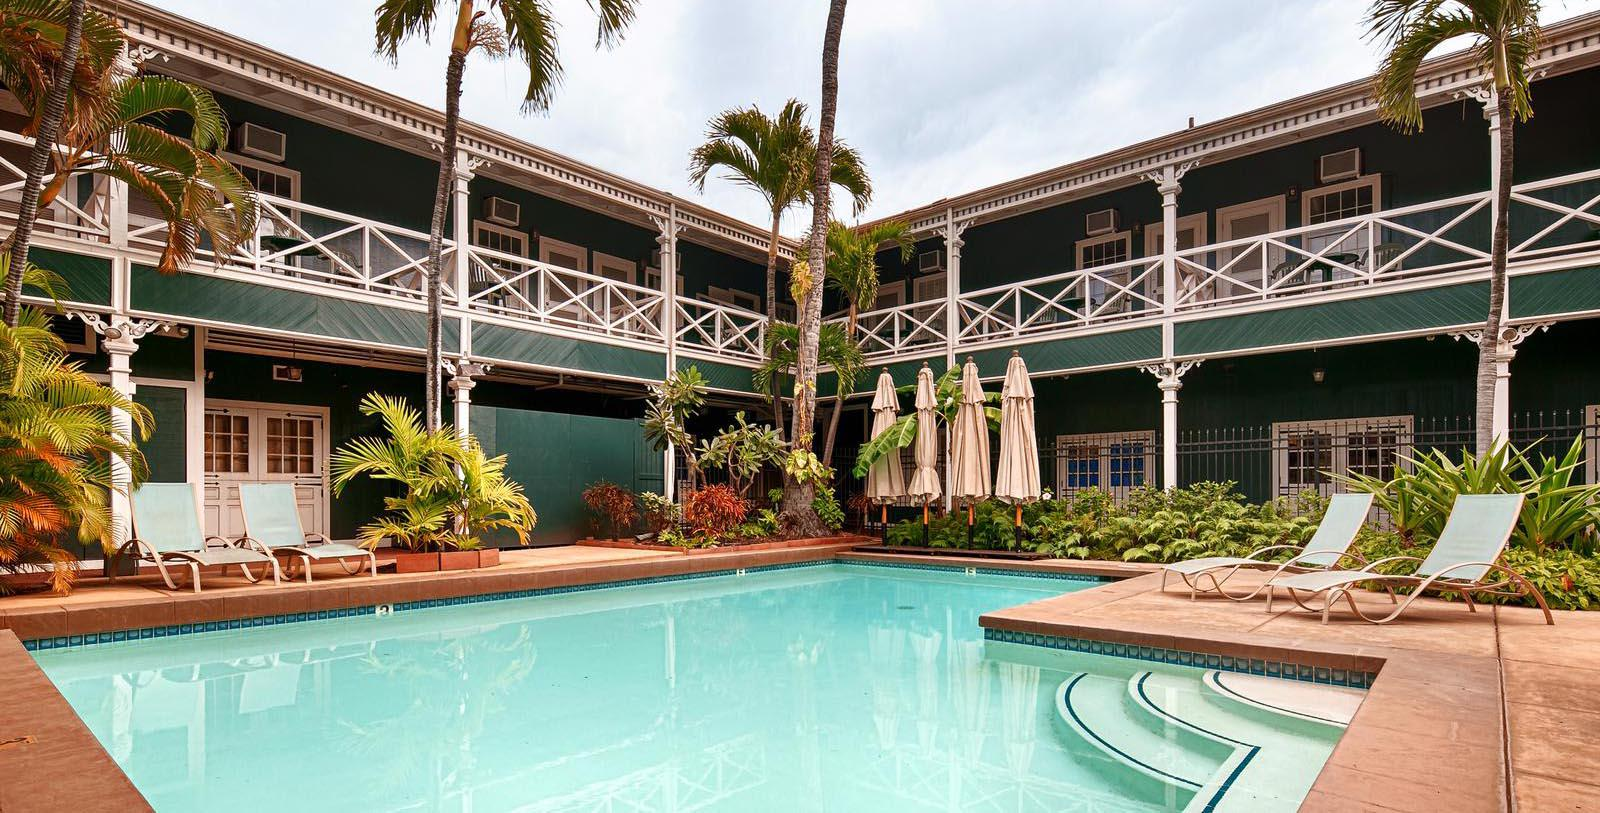 Image of Pool Pioneer Inn, 1901, Member Historic Hotels of America, in Lahaina, Hawaii, Experience